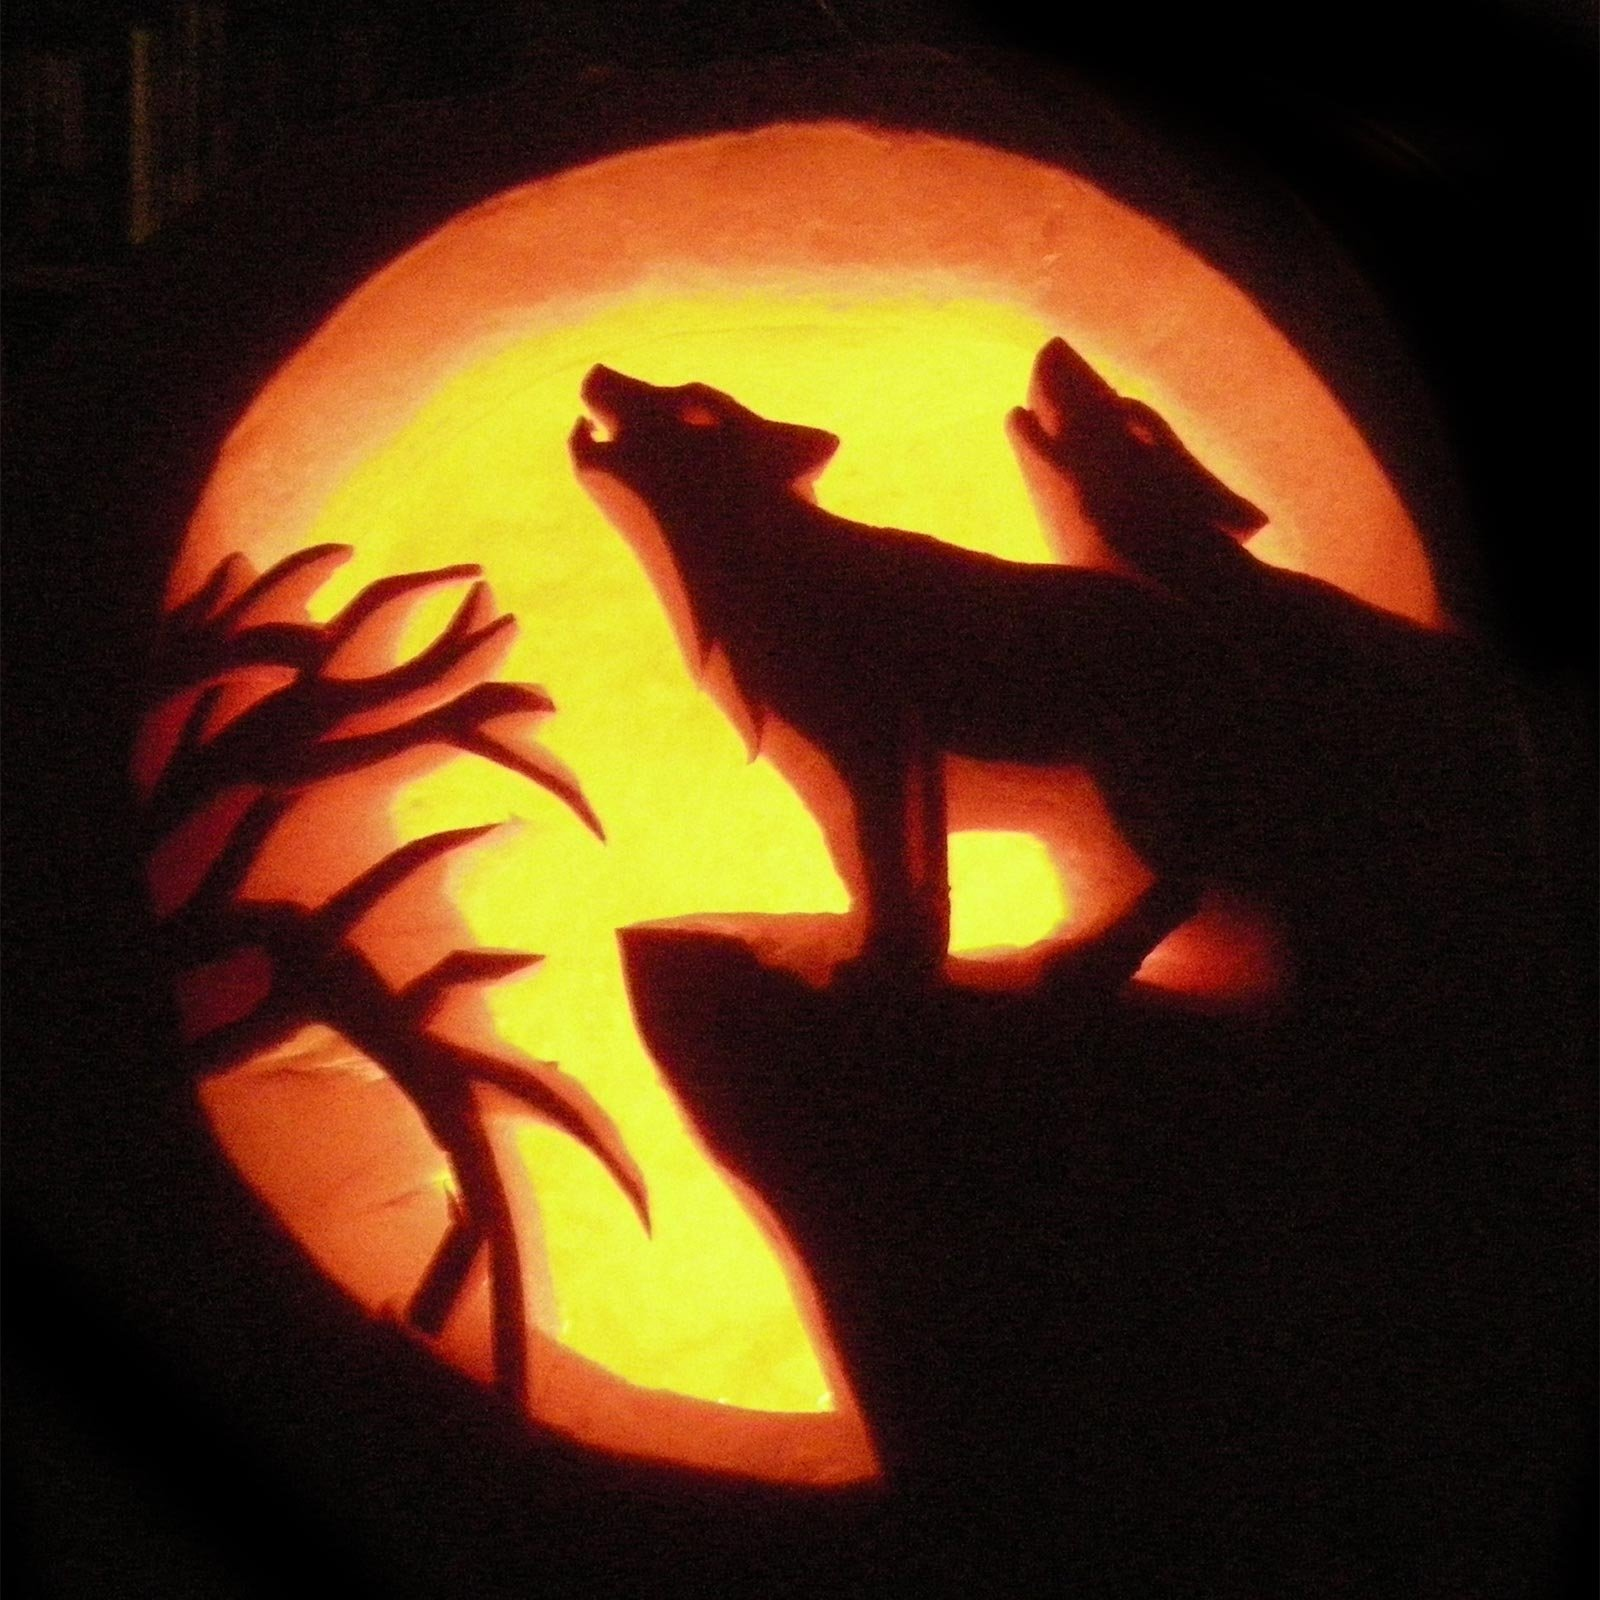 10 Unique Scary Easy Pumpkin Carving Ideas cool pumpkin cravings 28 best cool scary halloween pumpkin carving 1 2021